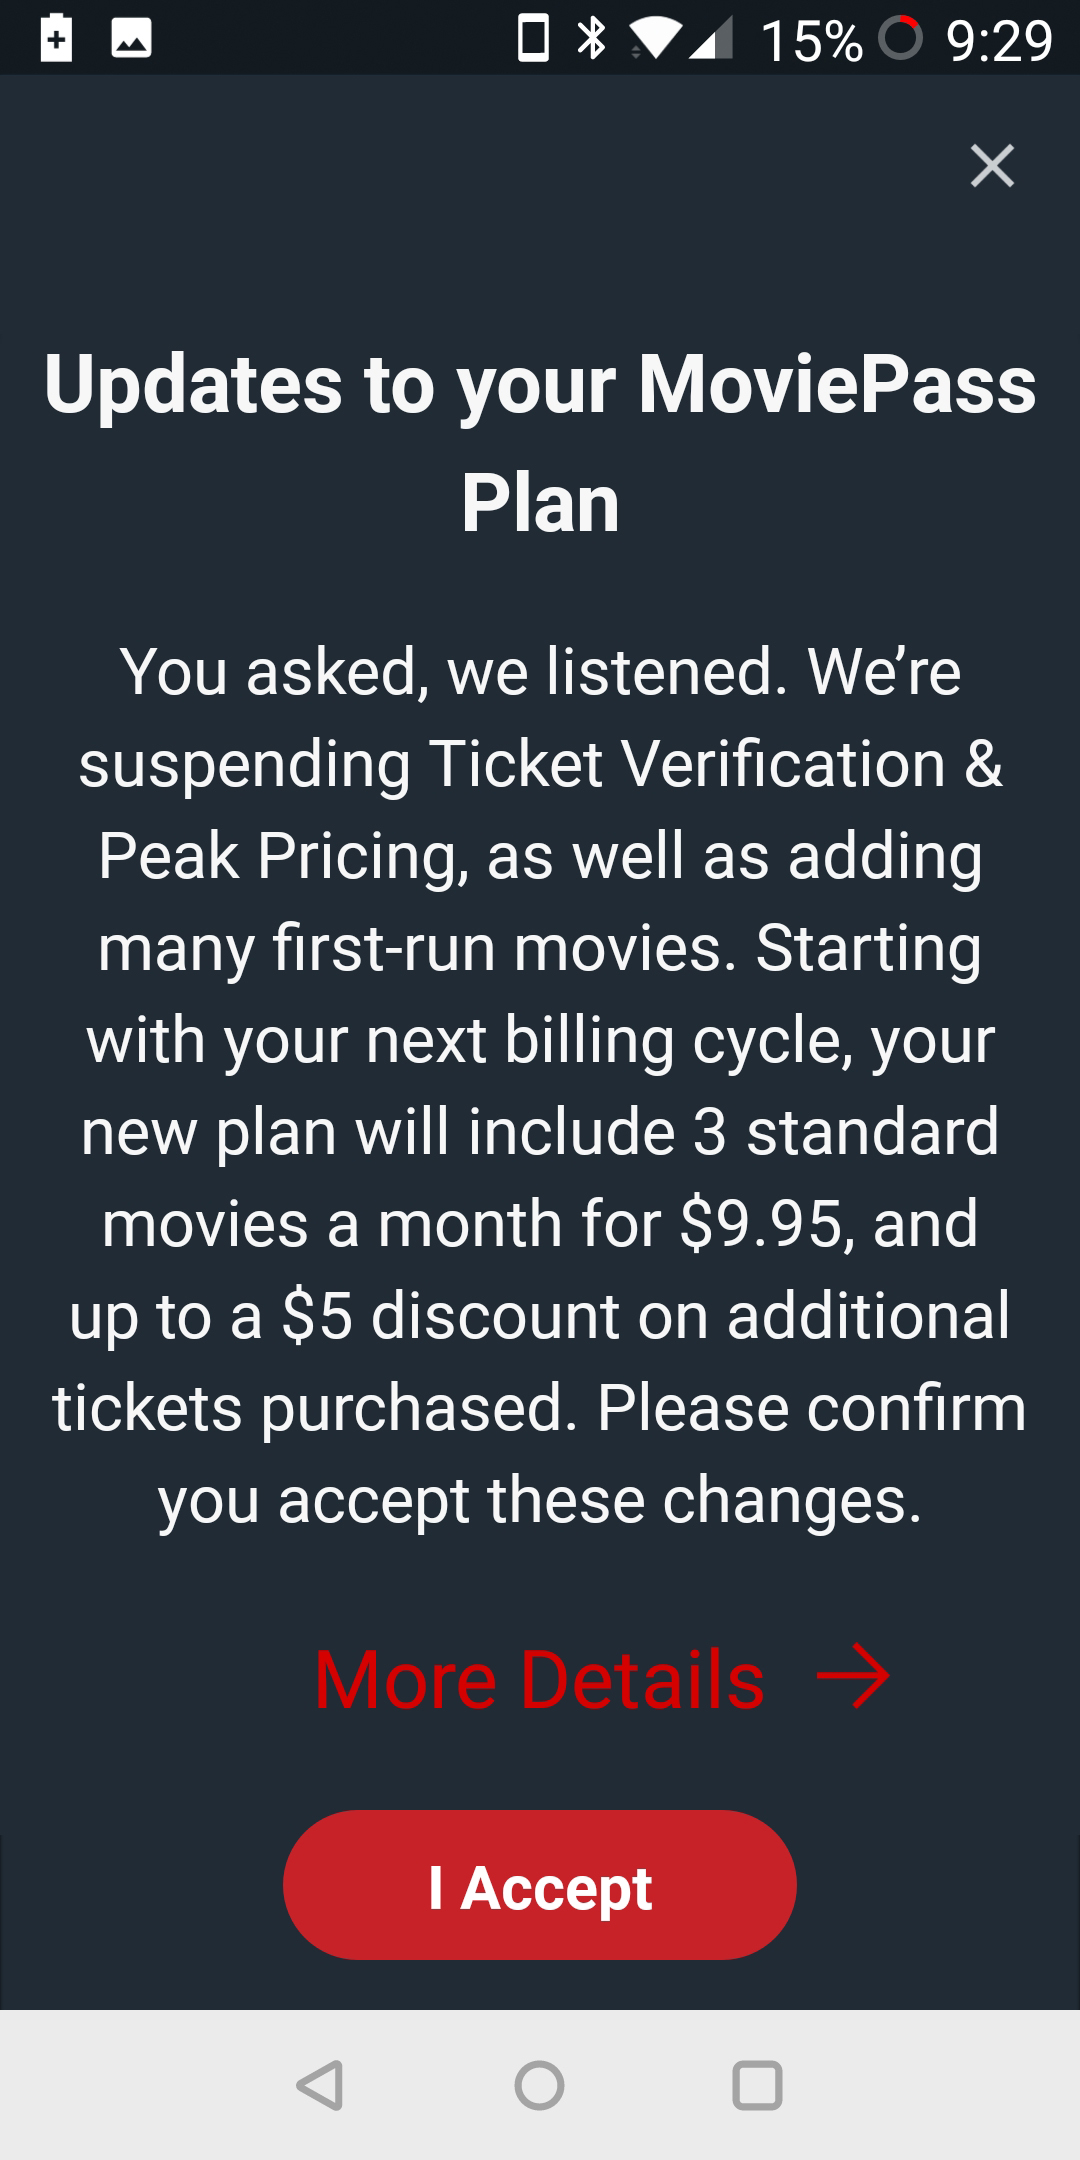 MoviePass changes | DaveTavres.com